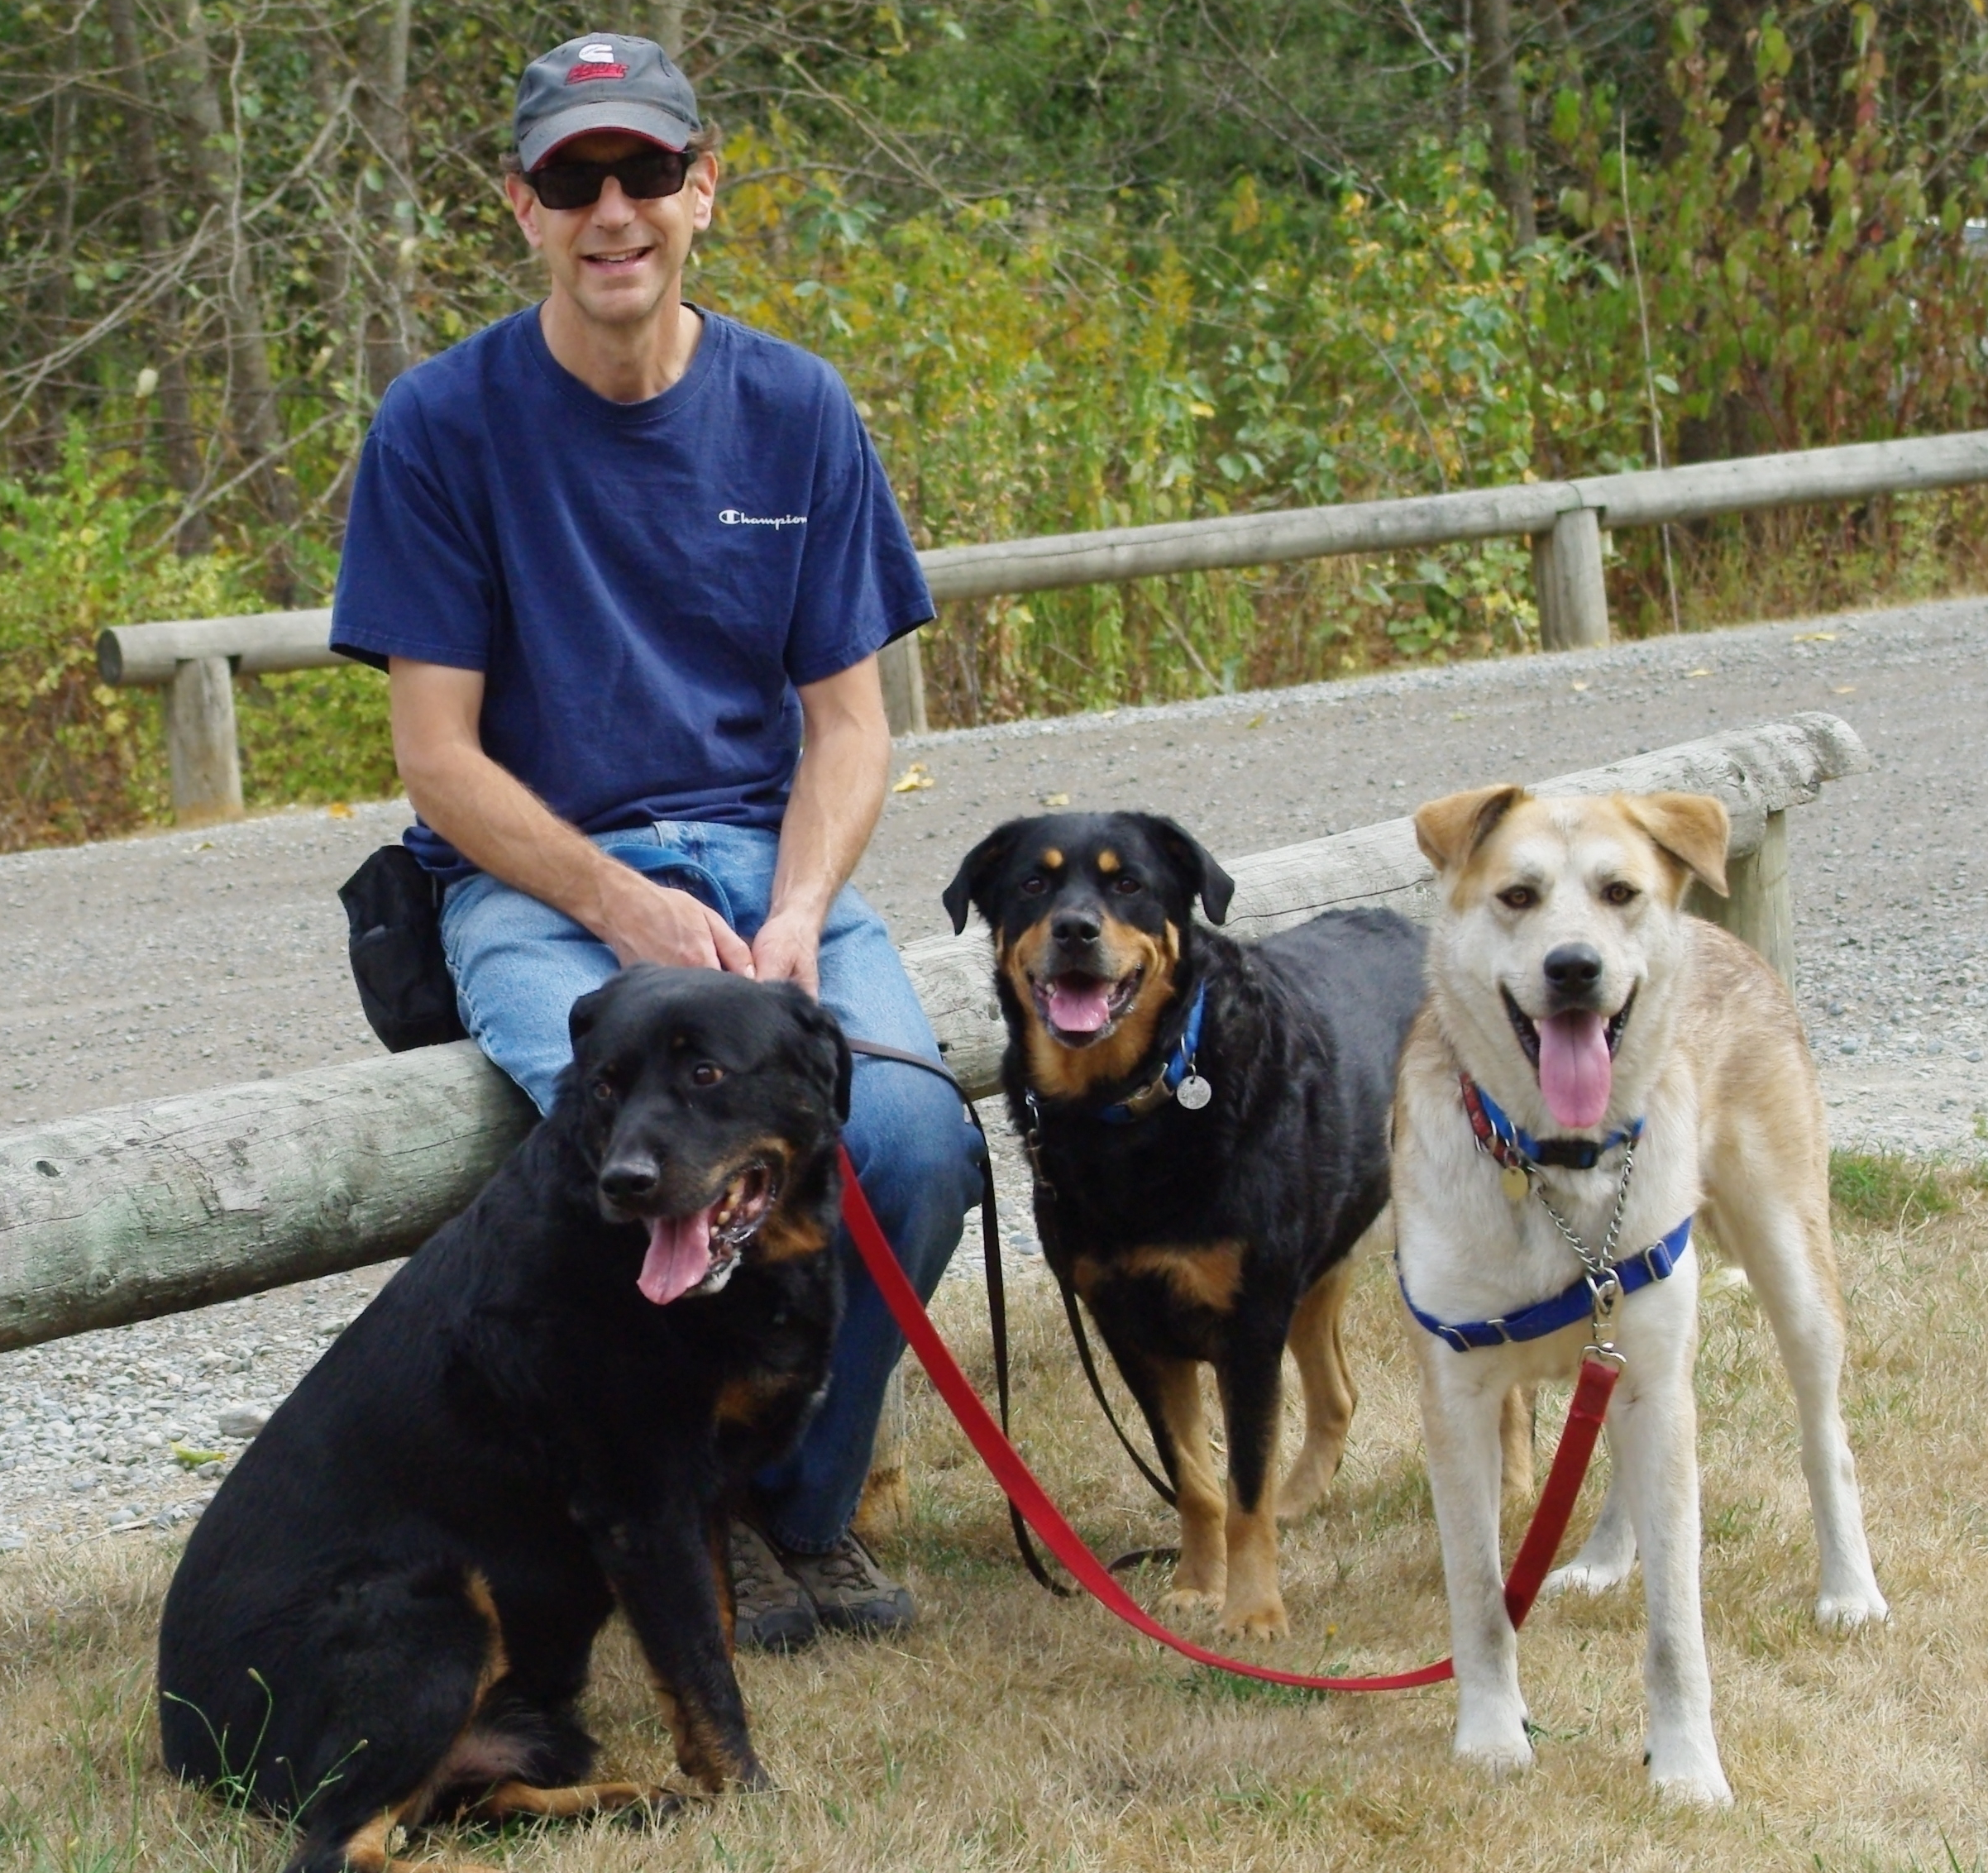 Trainer Andy with his three dogs